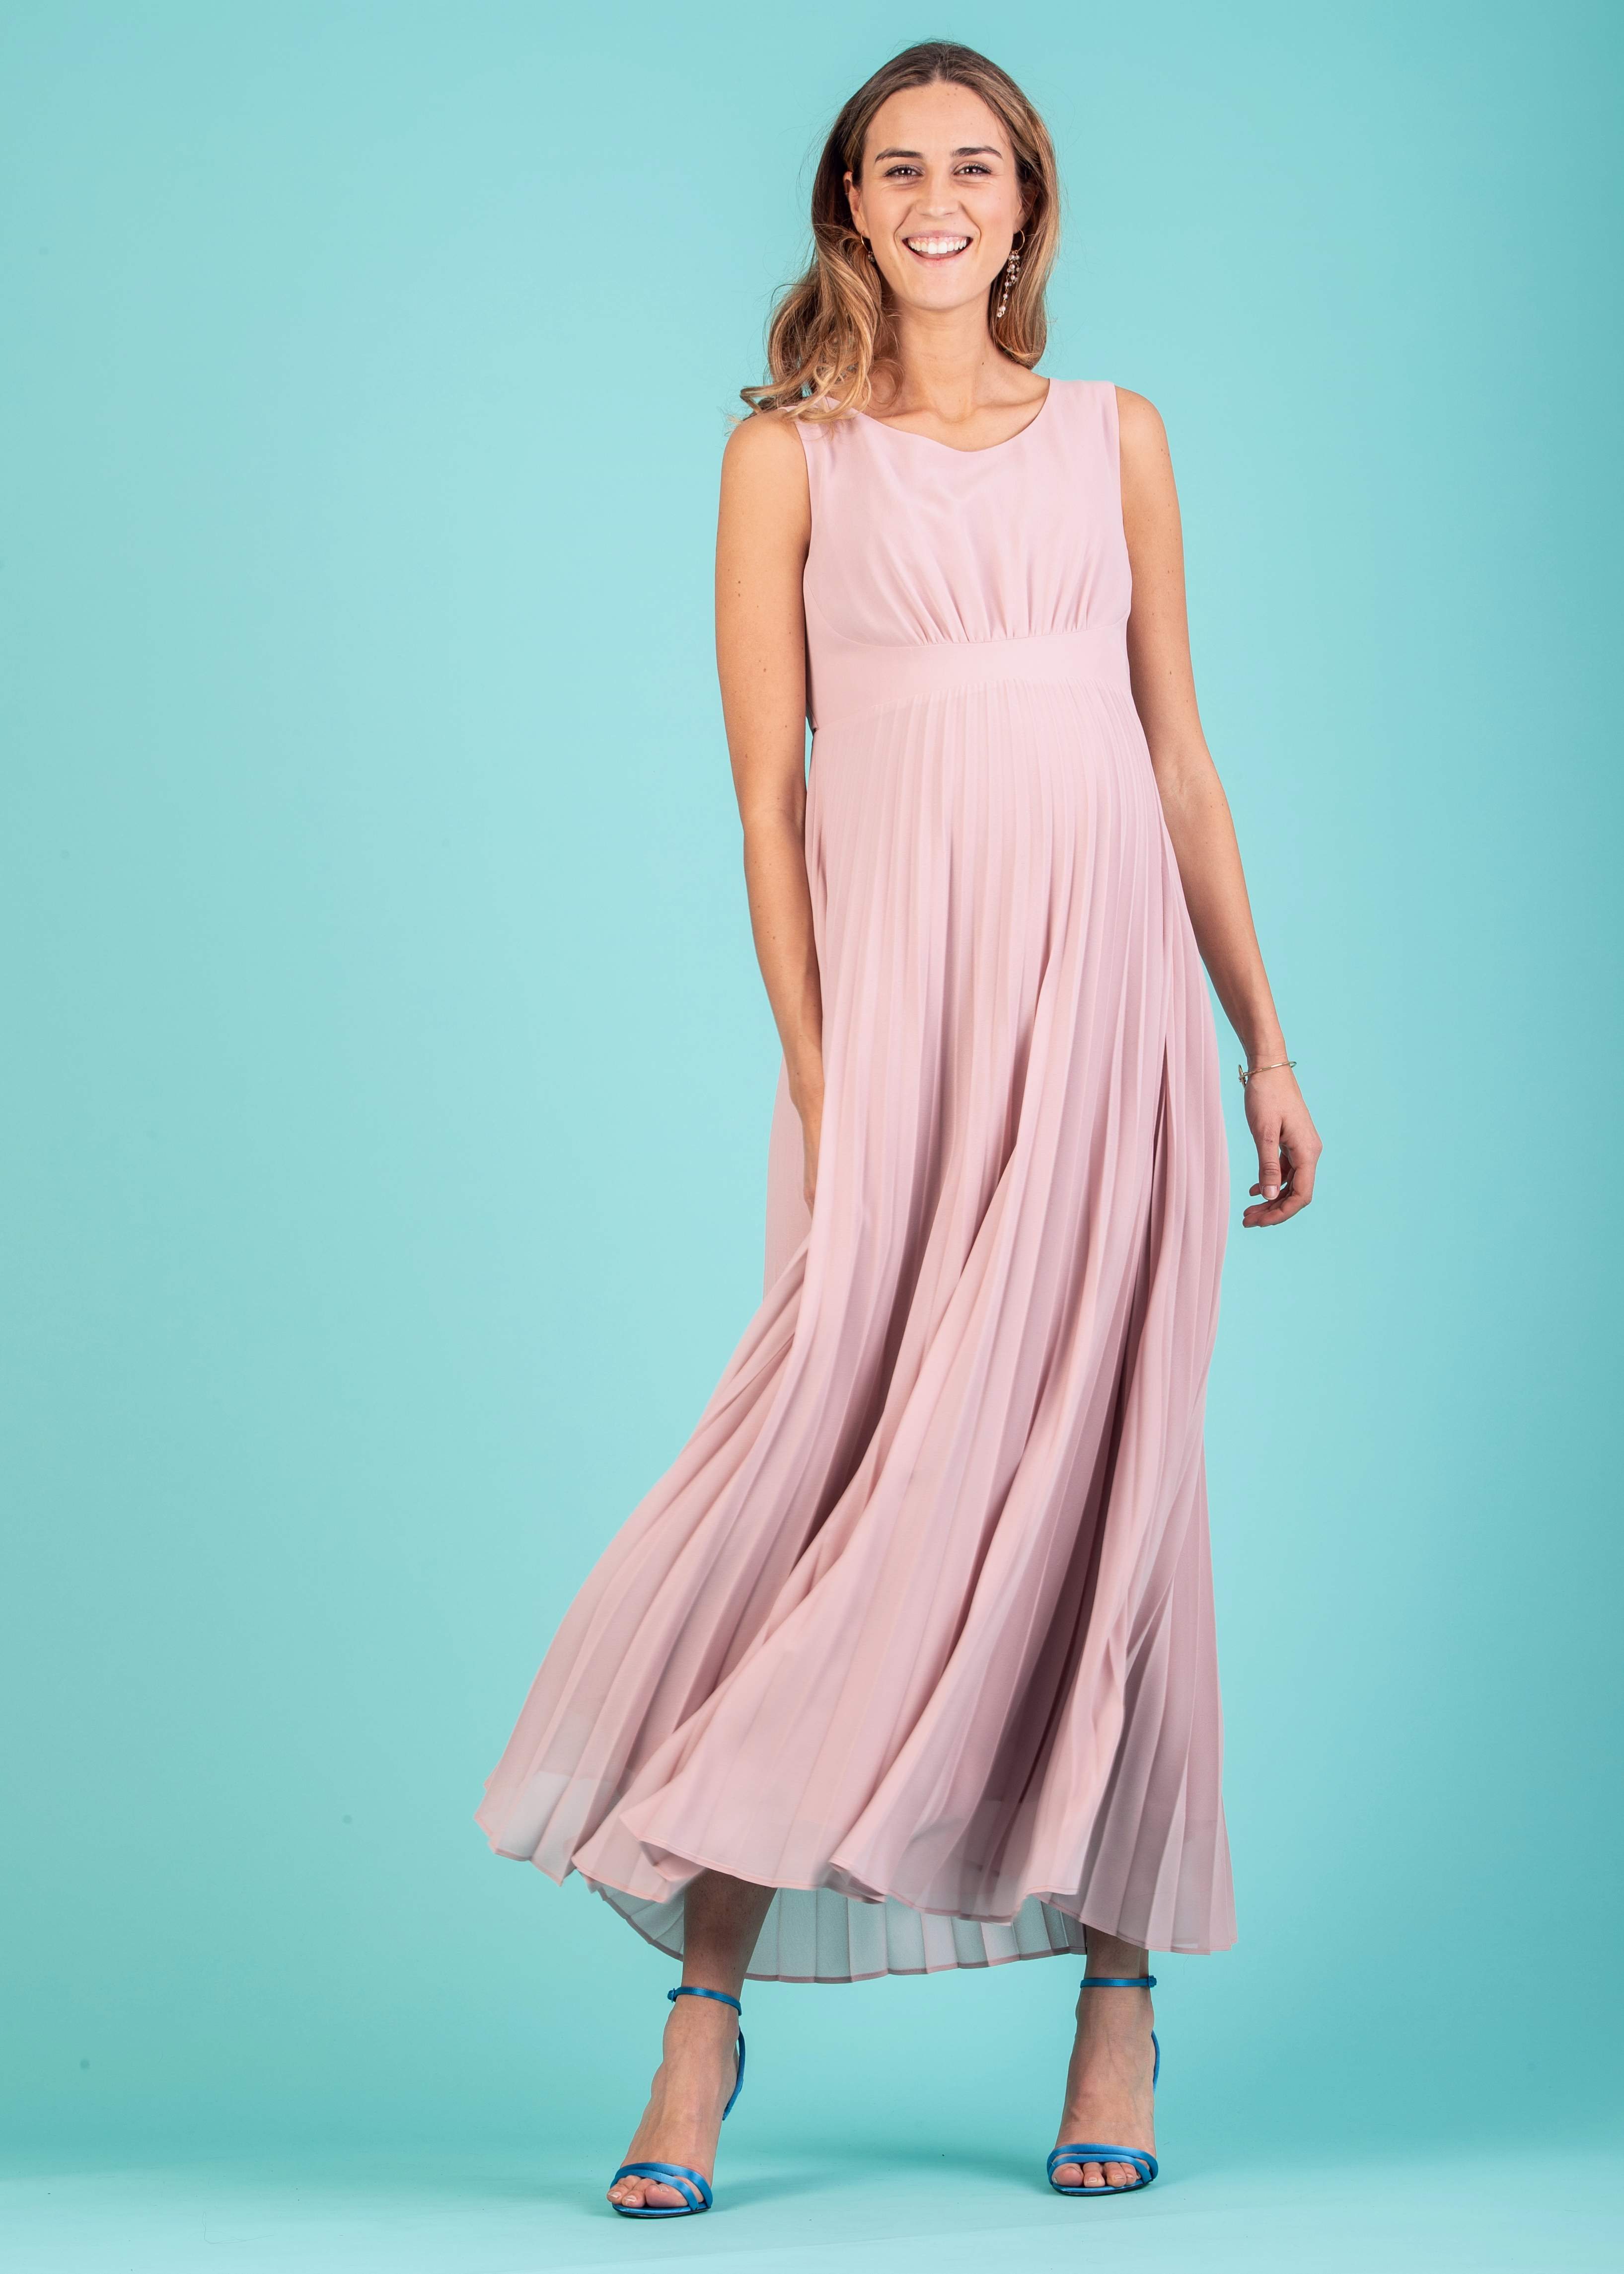 f6aa981ae9 Dresses - Long Maternity Dress with Soleil Pleated Skirt | Attesa ...